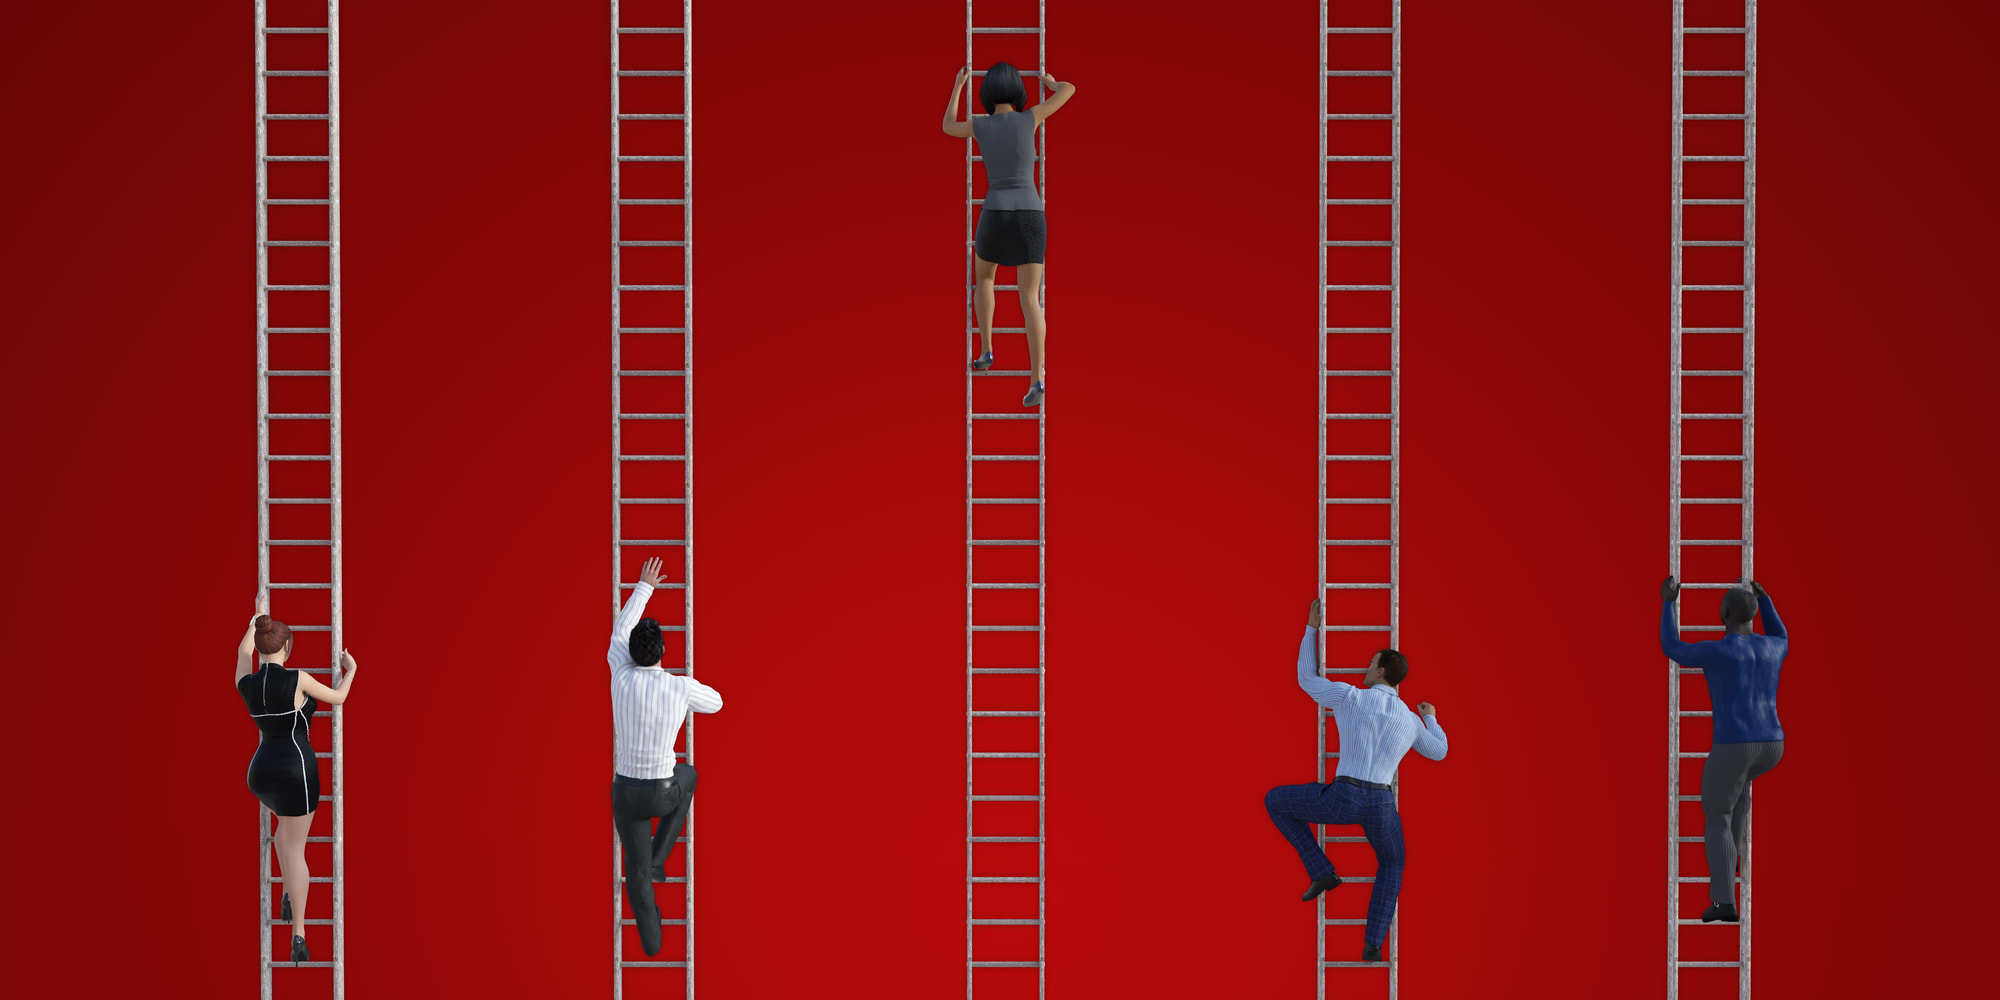 Climbing ladders overcoming franchise growth challenges